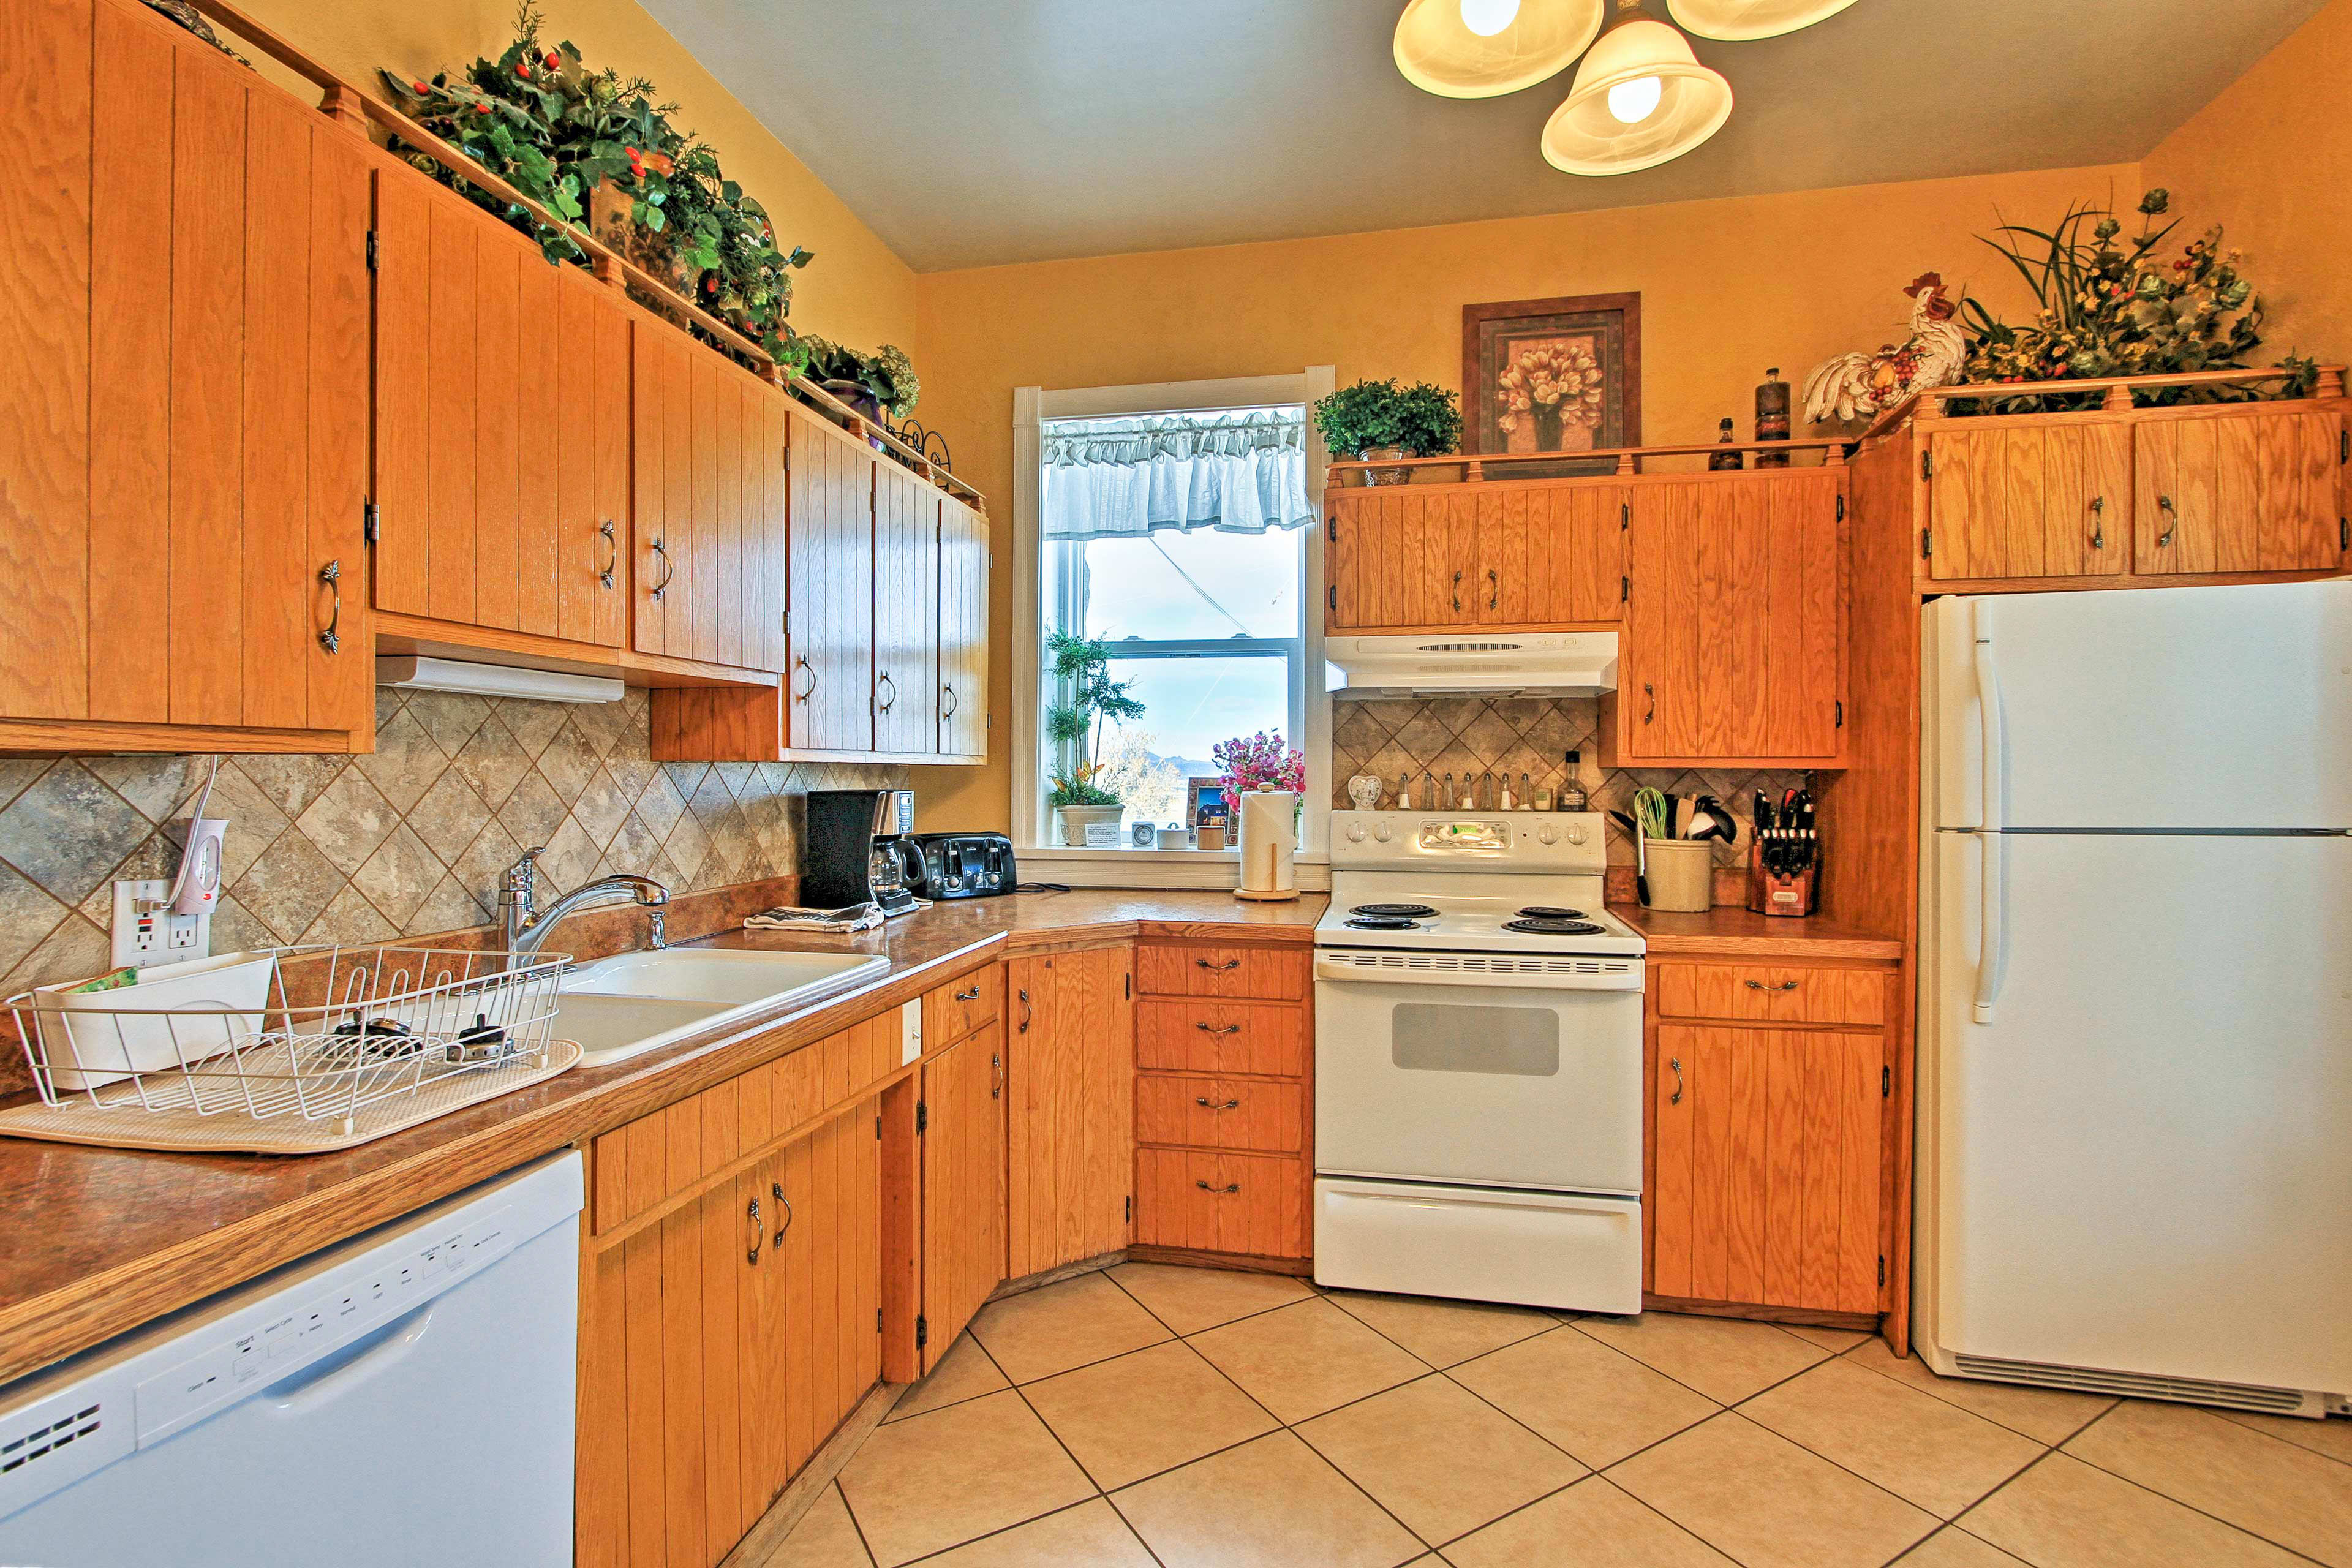 Cooking for groups is a breeze in the fully equipped kitchen.